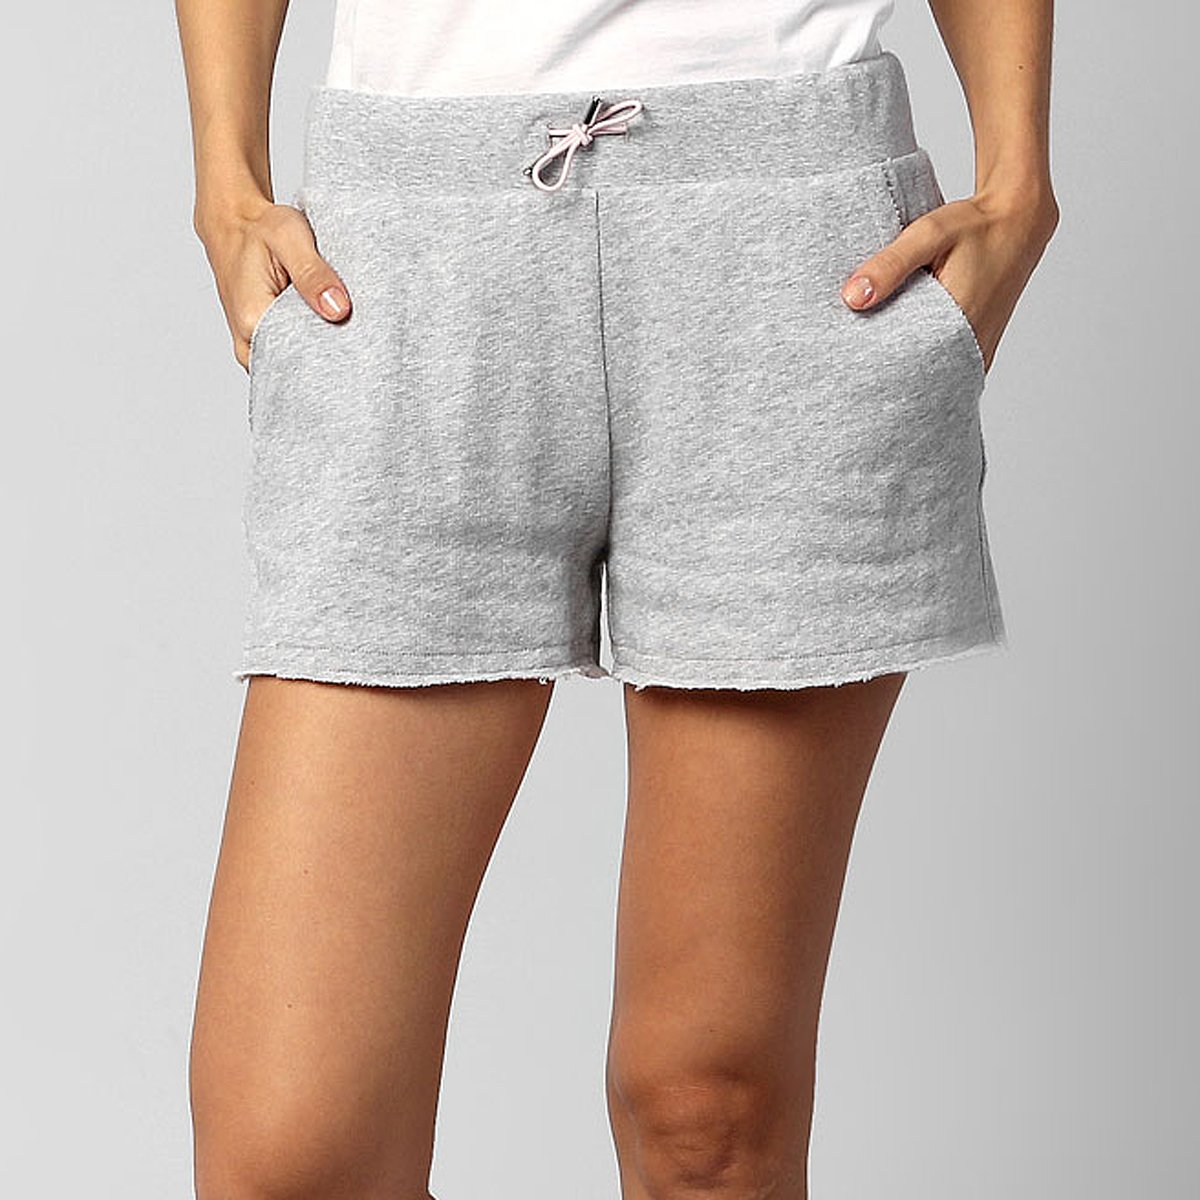 63be0794bf994 Short Lacoste - Compre Agora   Netshoes